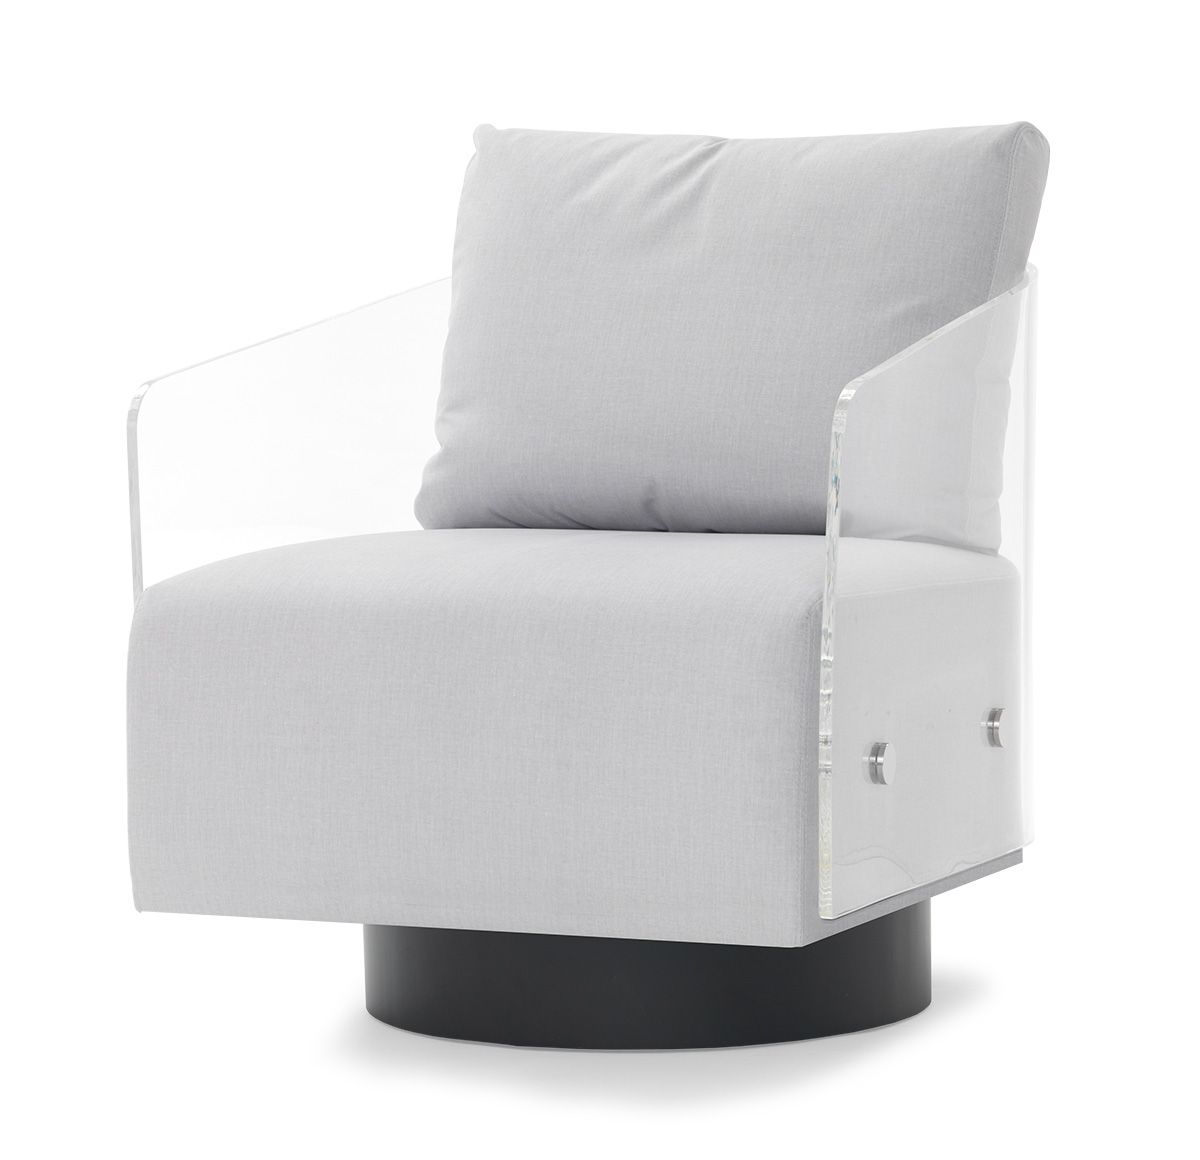 [%lucy Clear Full Swivel Chair<br>[available Online And In Stores For Newest Lucy Grey Sofa Chairs|lucy Grey Sofa Chairs For Best And Newest Lucy Clear Full Swivel Chair<br>[available Online And In Stores|fashionable Lucy Grey Sofa Chairs For Lucy Clear Full Swivel Chair<br>[available Online And In Stores|latest Lucy Clear Full Swivel Chair<br>[available Online And In Stores Intended For Lucy Grey Sofa Chairs%] (View 12 of 20)